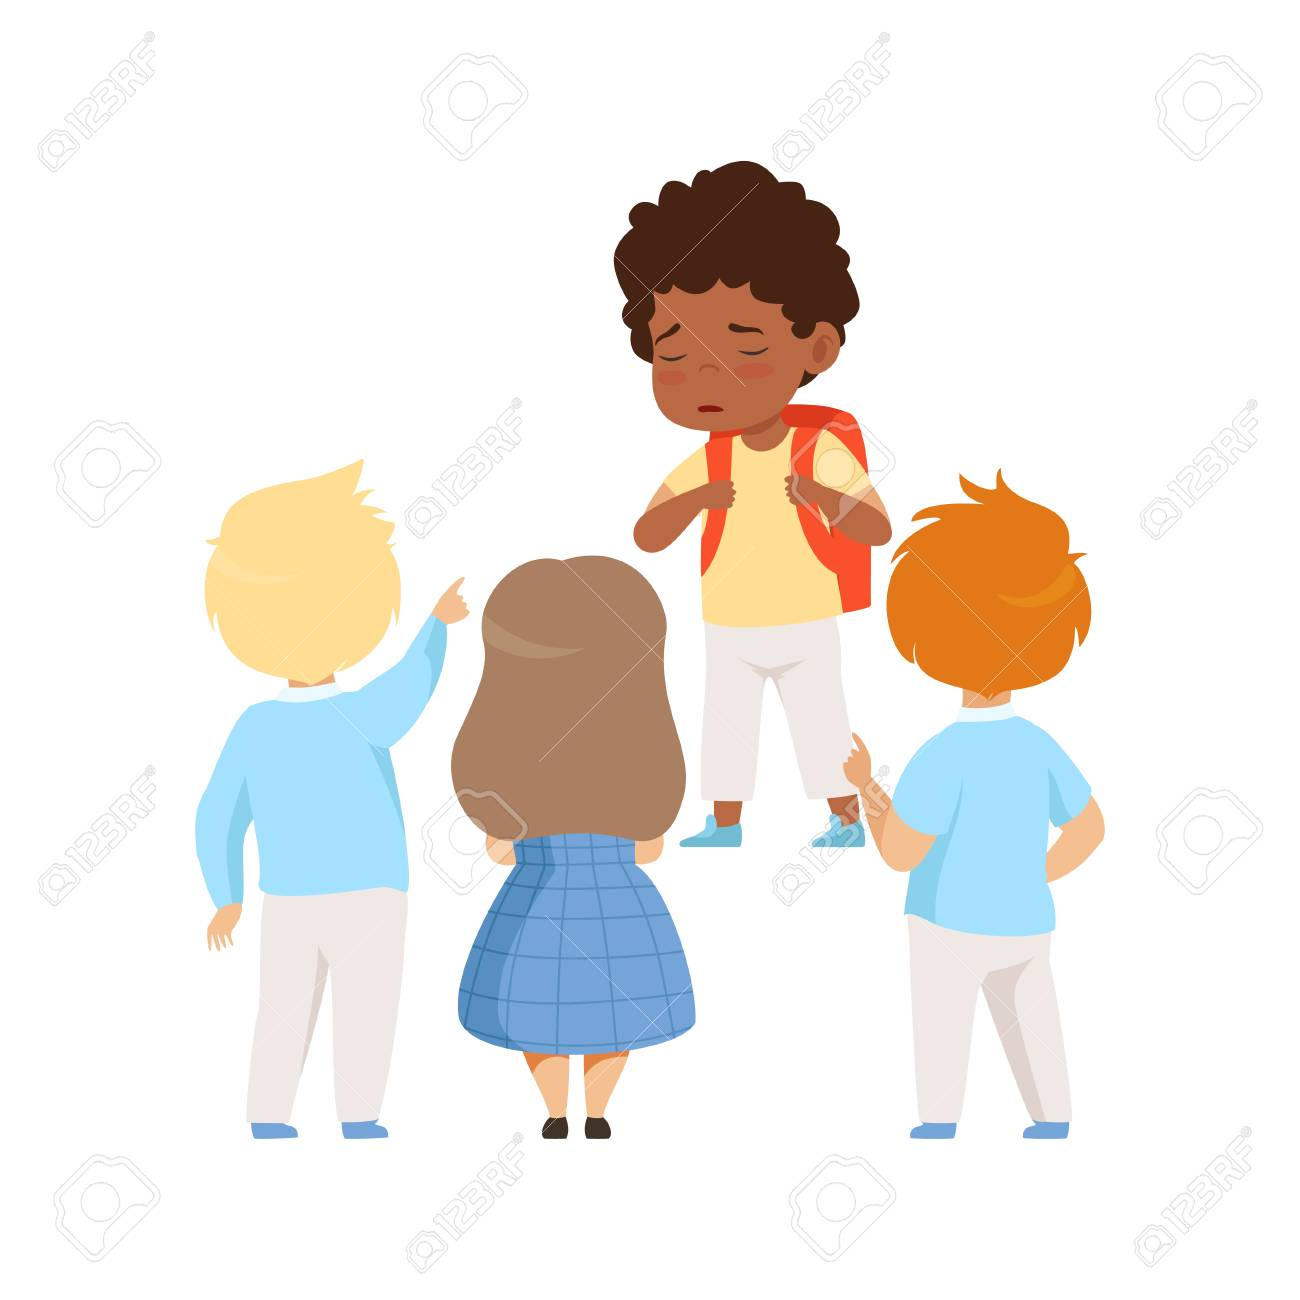 Kids mocking an african ameican boy, bad behavior, conflict between kids, mockery and bullying at school vector Illustration isolated on a white background. - 128163053